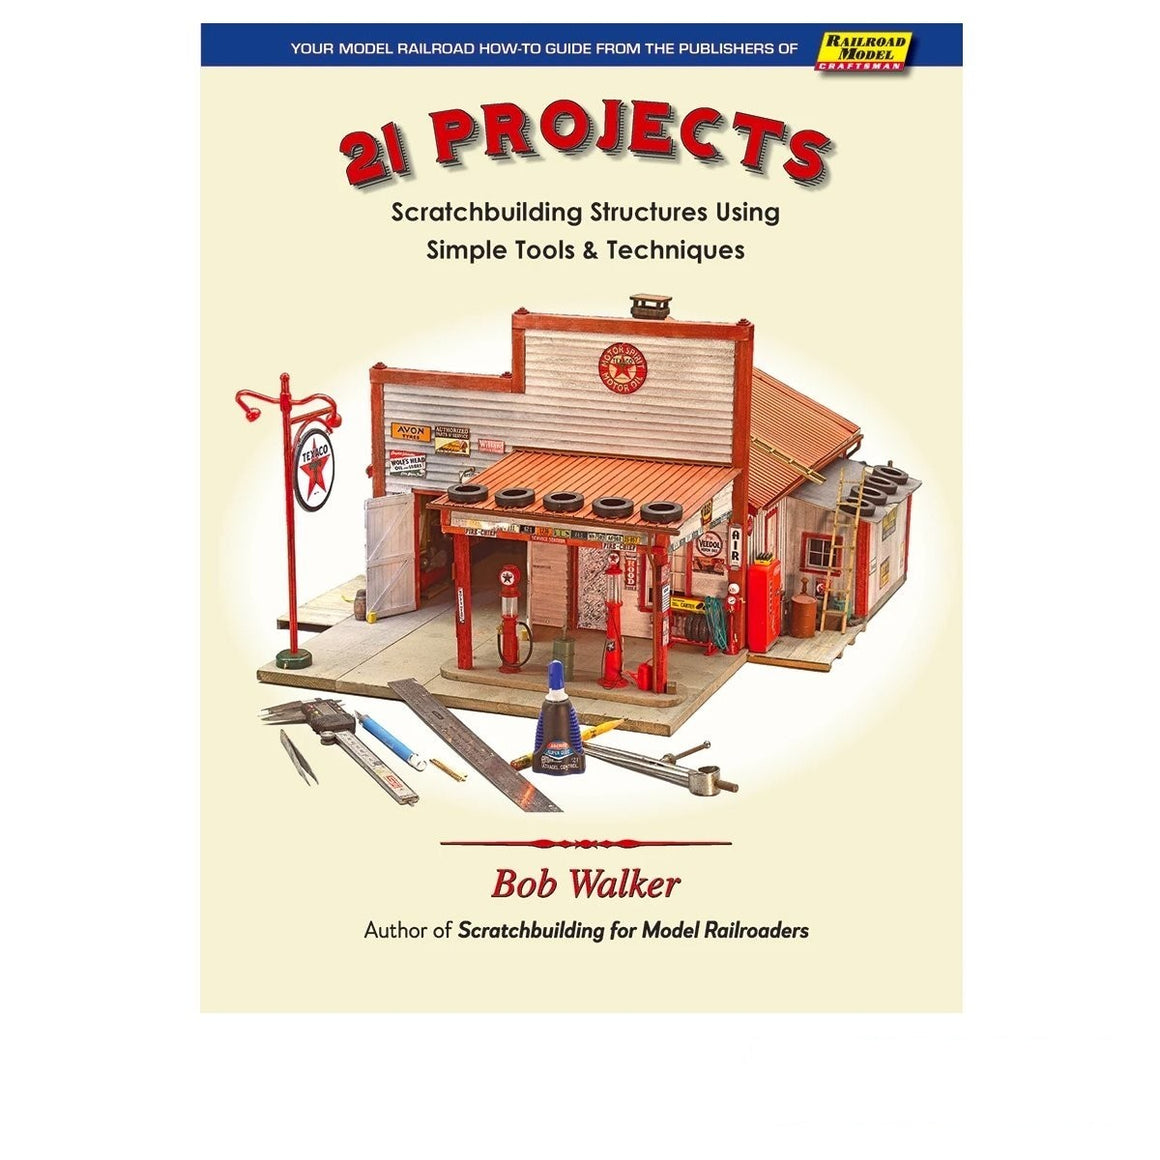 Books: 21 Projects - Scratchbuilding Structures Using Simple Tools & Techniques